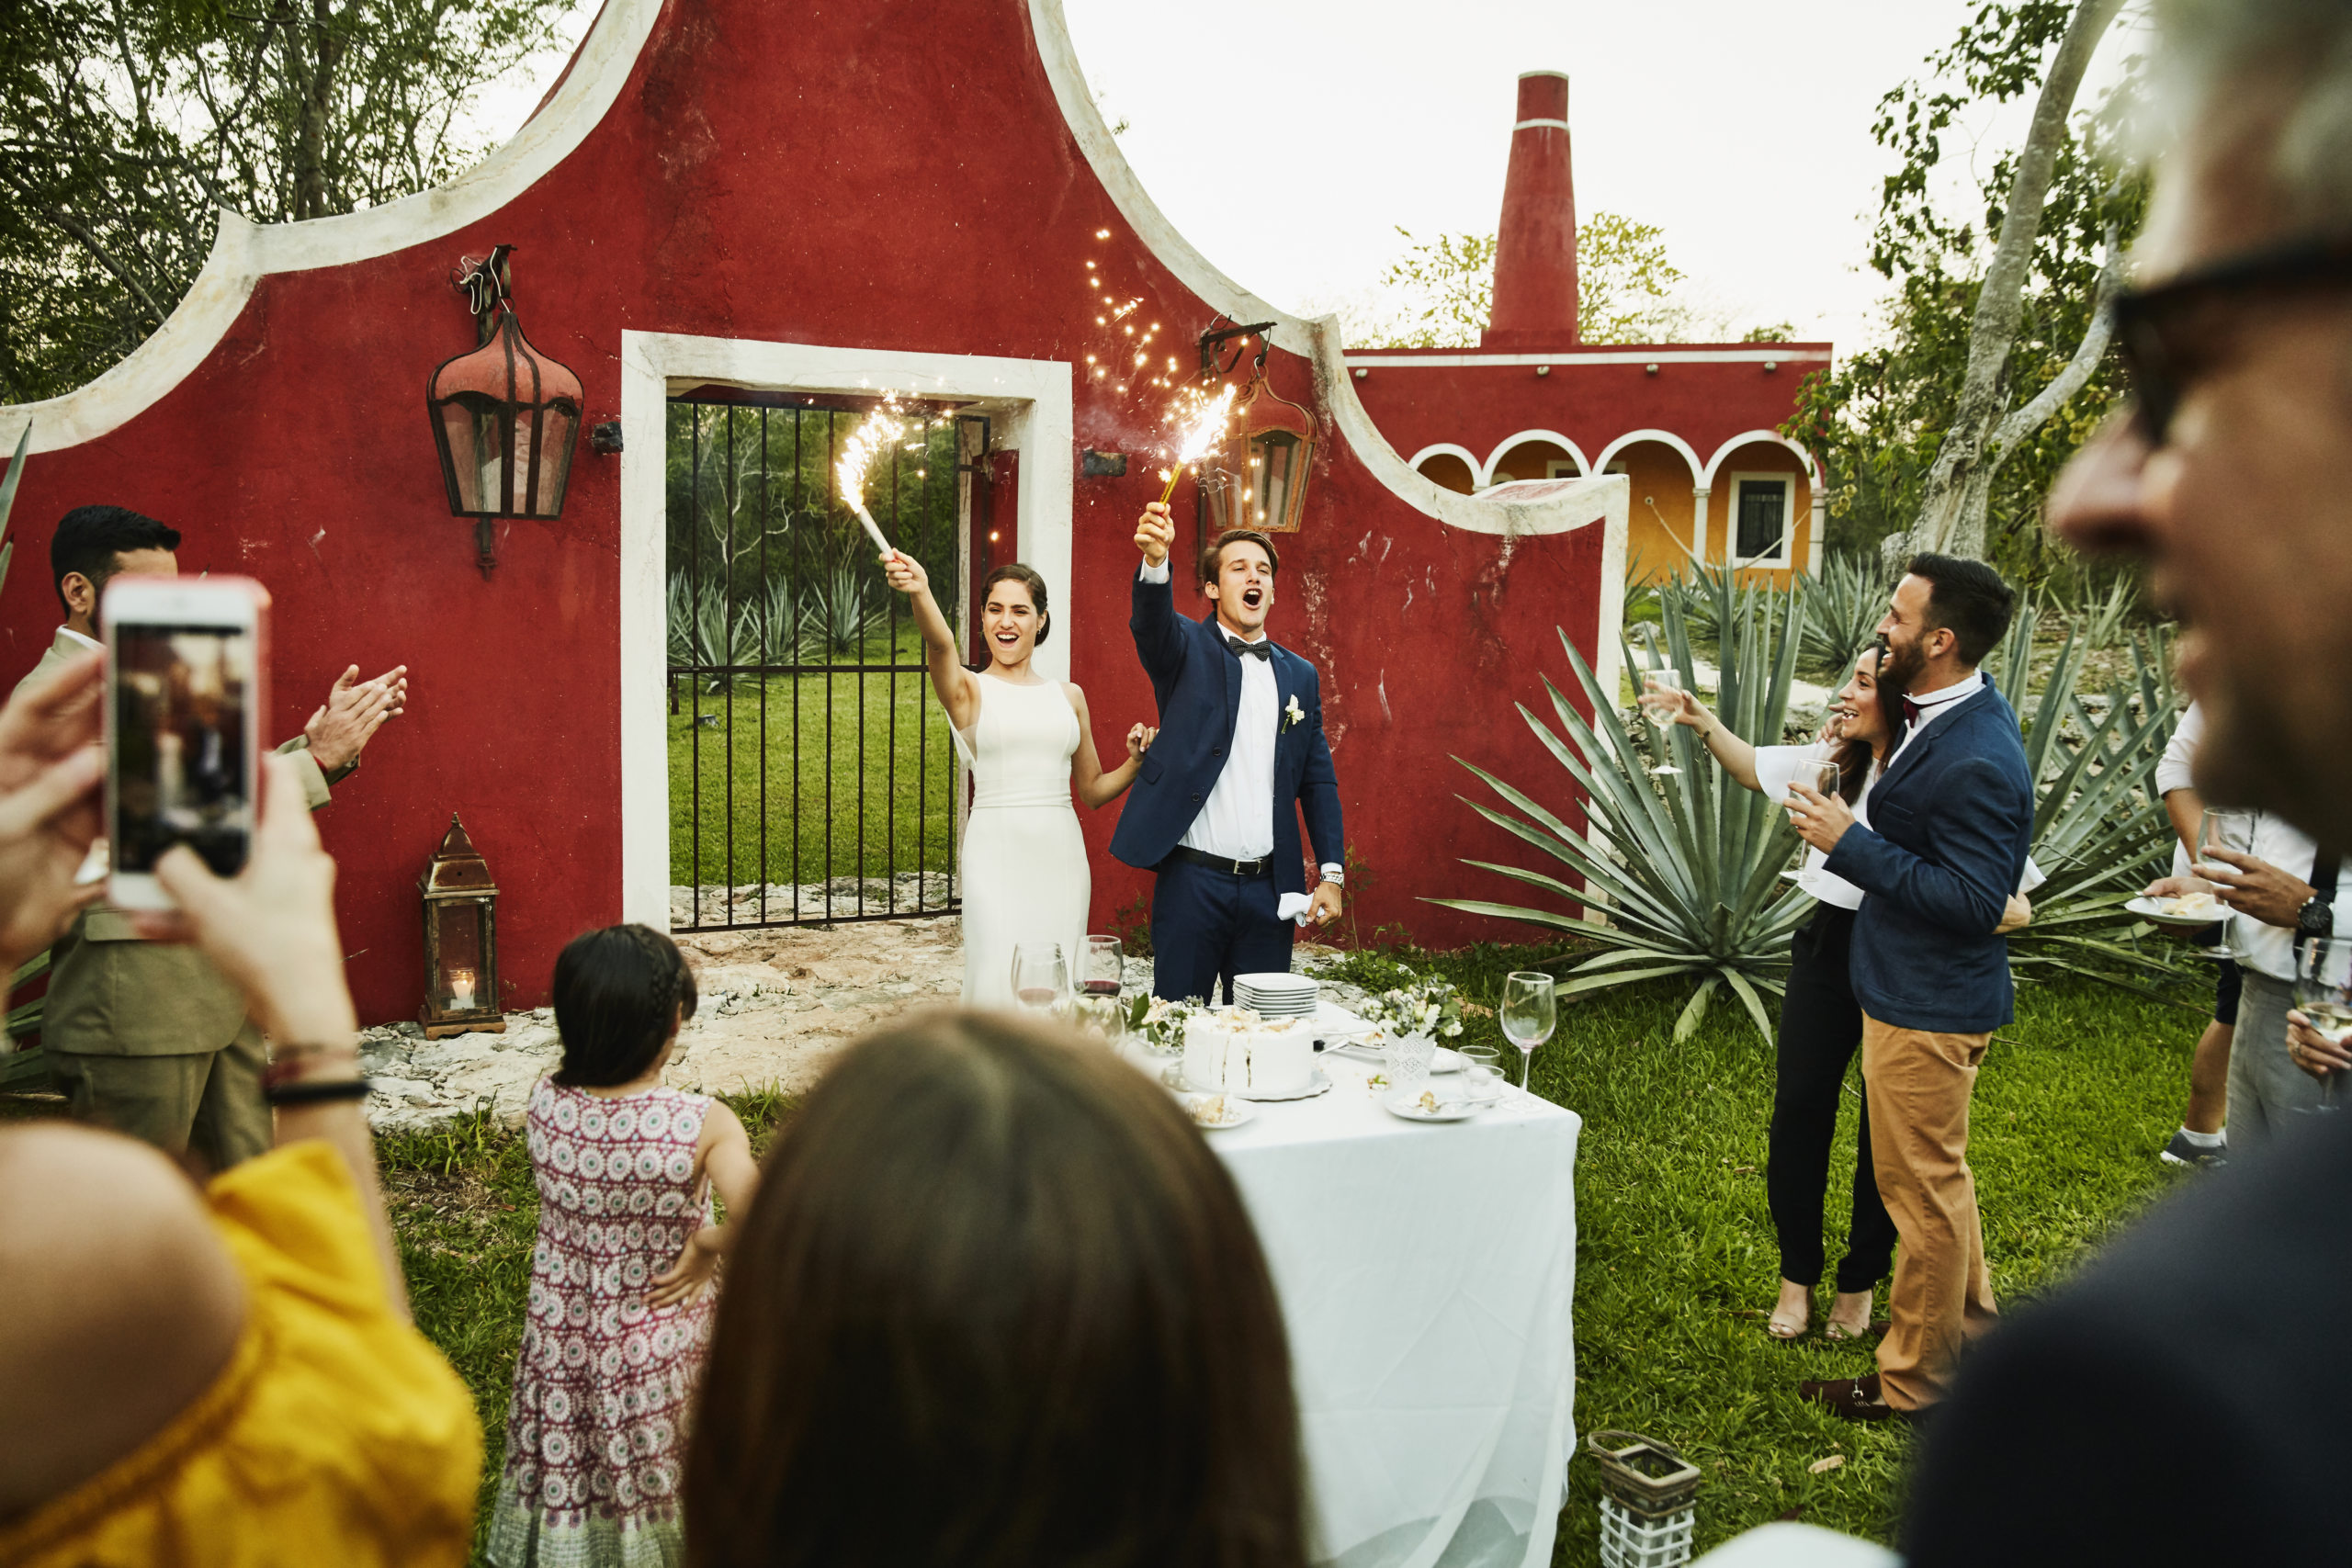 8 Costly Wedding Mistakes To Avoid